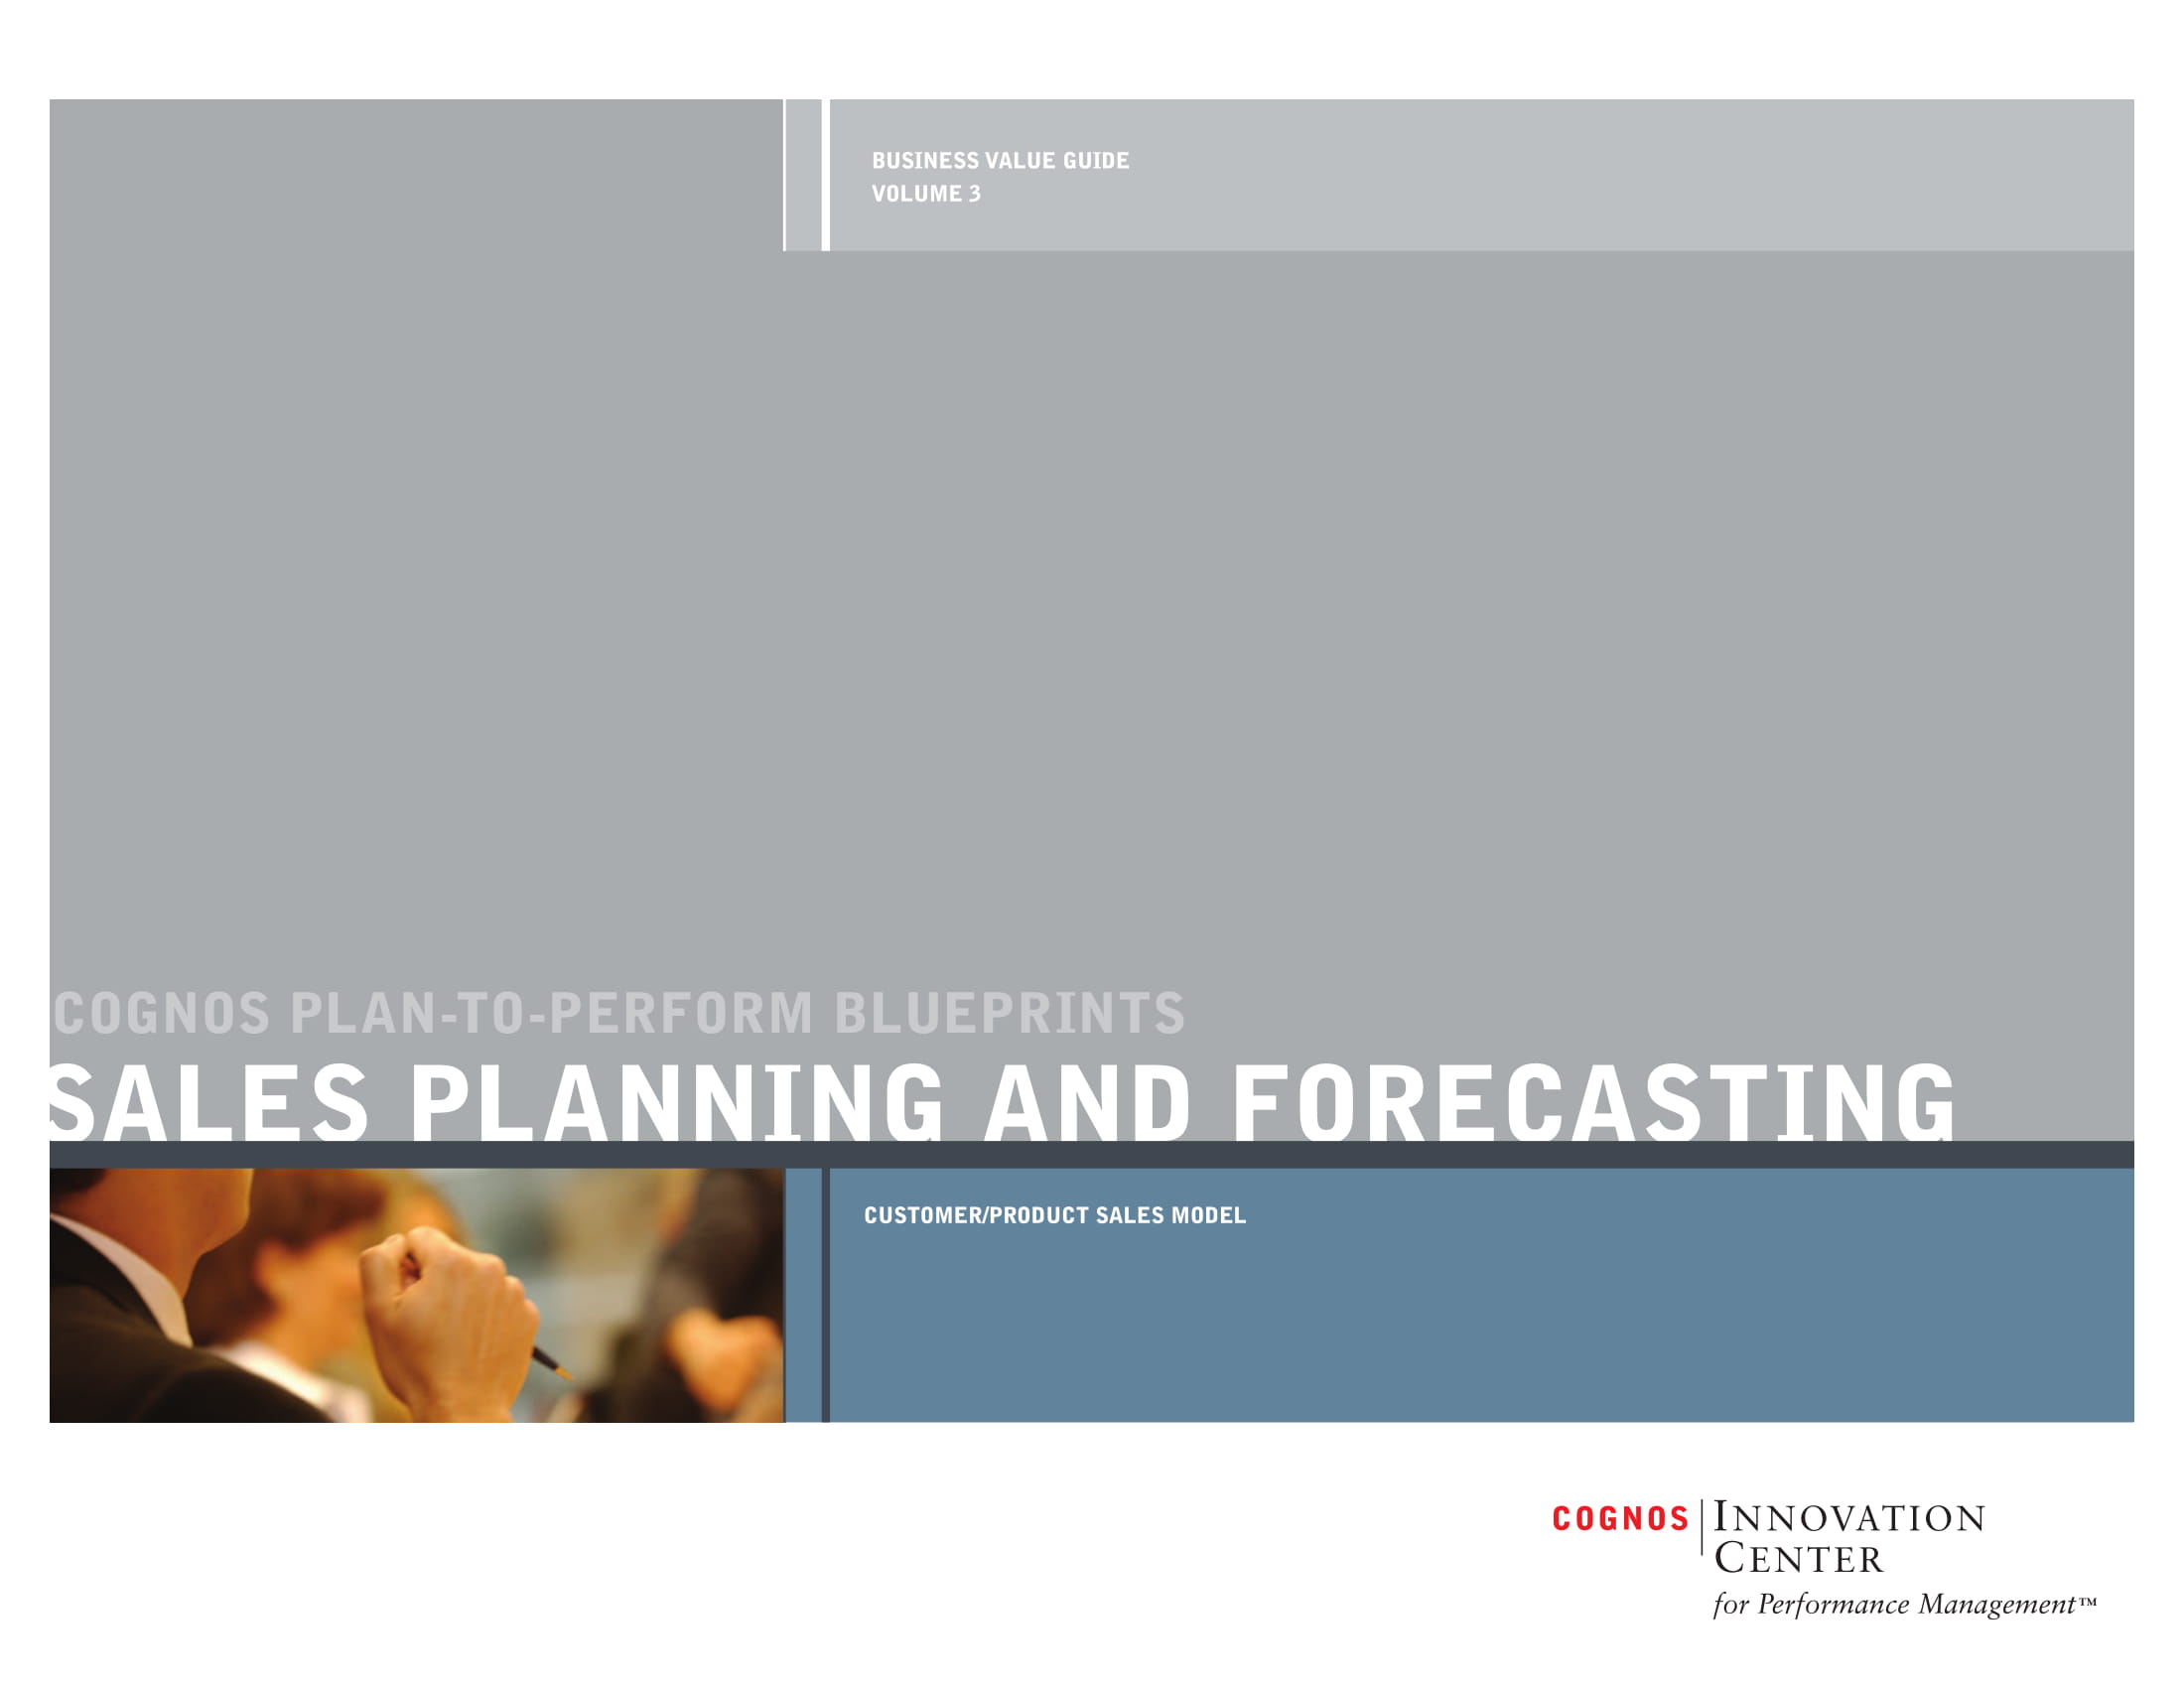 customer and product sales model sales planning and forecasting for sales employees example 01